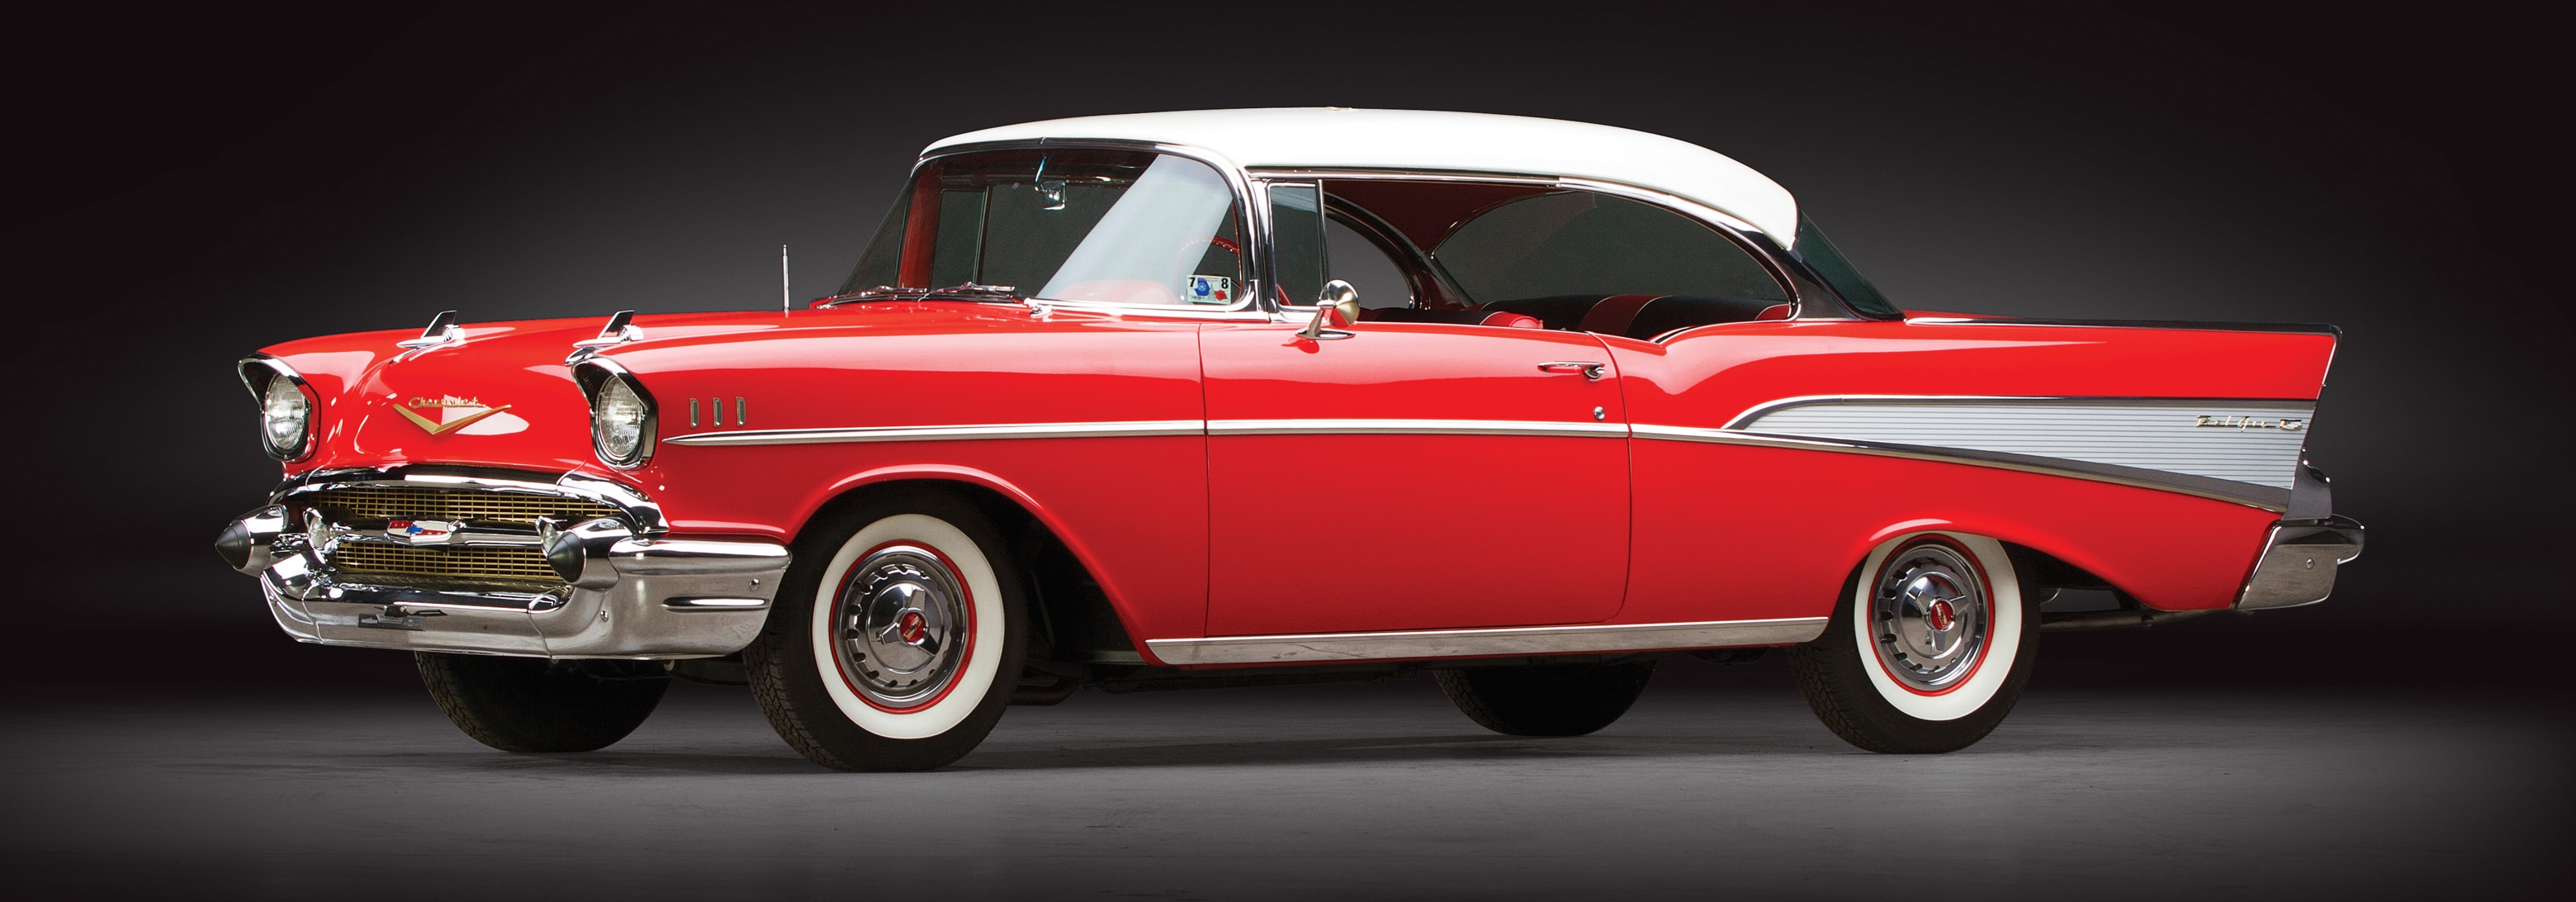 Old Chevy Cars >> What was so special about the '57 Chevy? - ClassicCars.com Journal